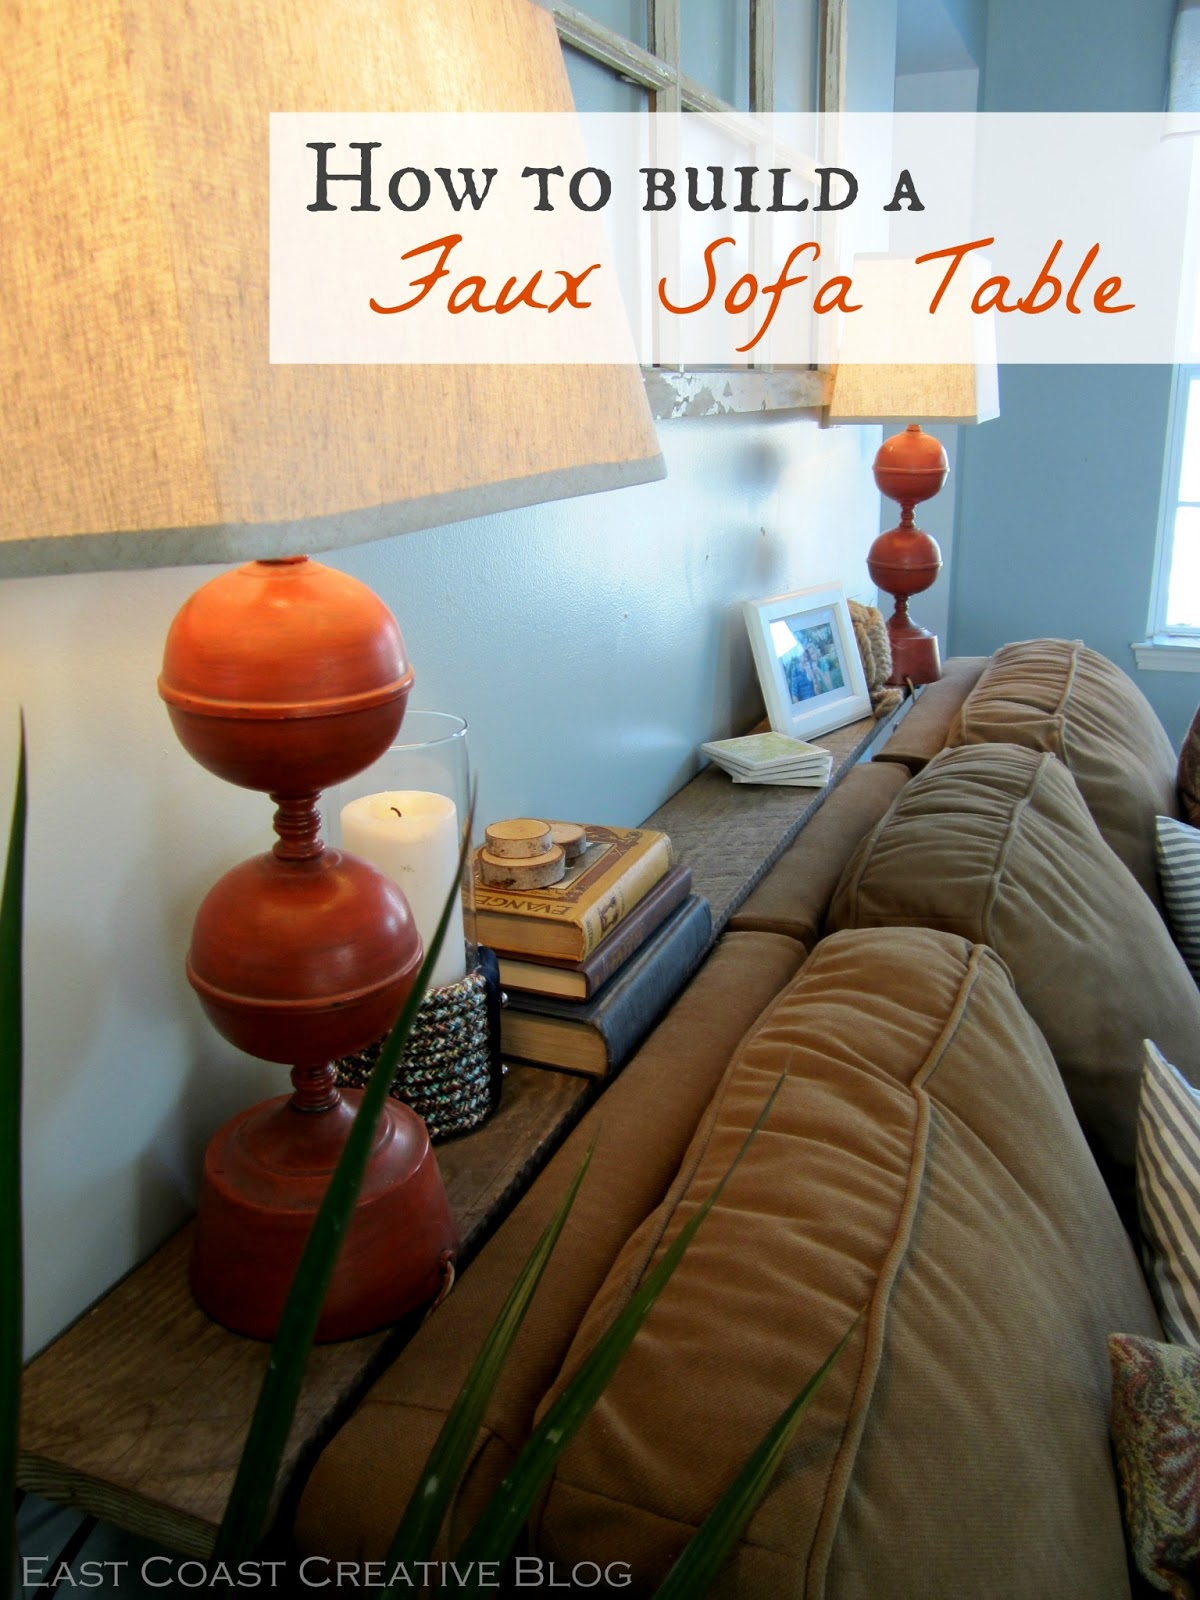 Faux Sofa Table {Tutorial}